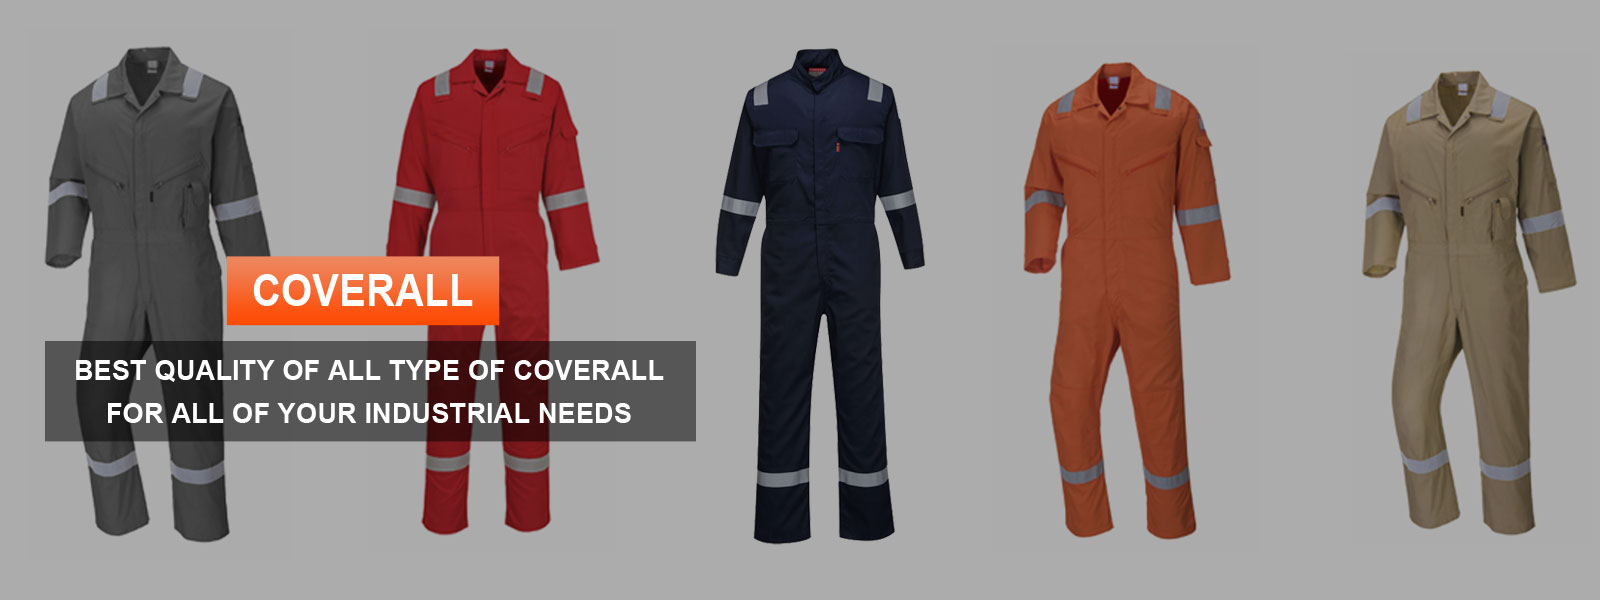 Coverall Manufacturers in Dublin